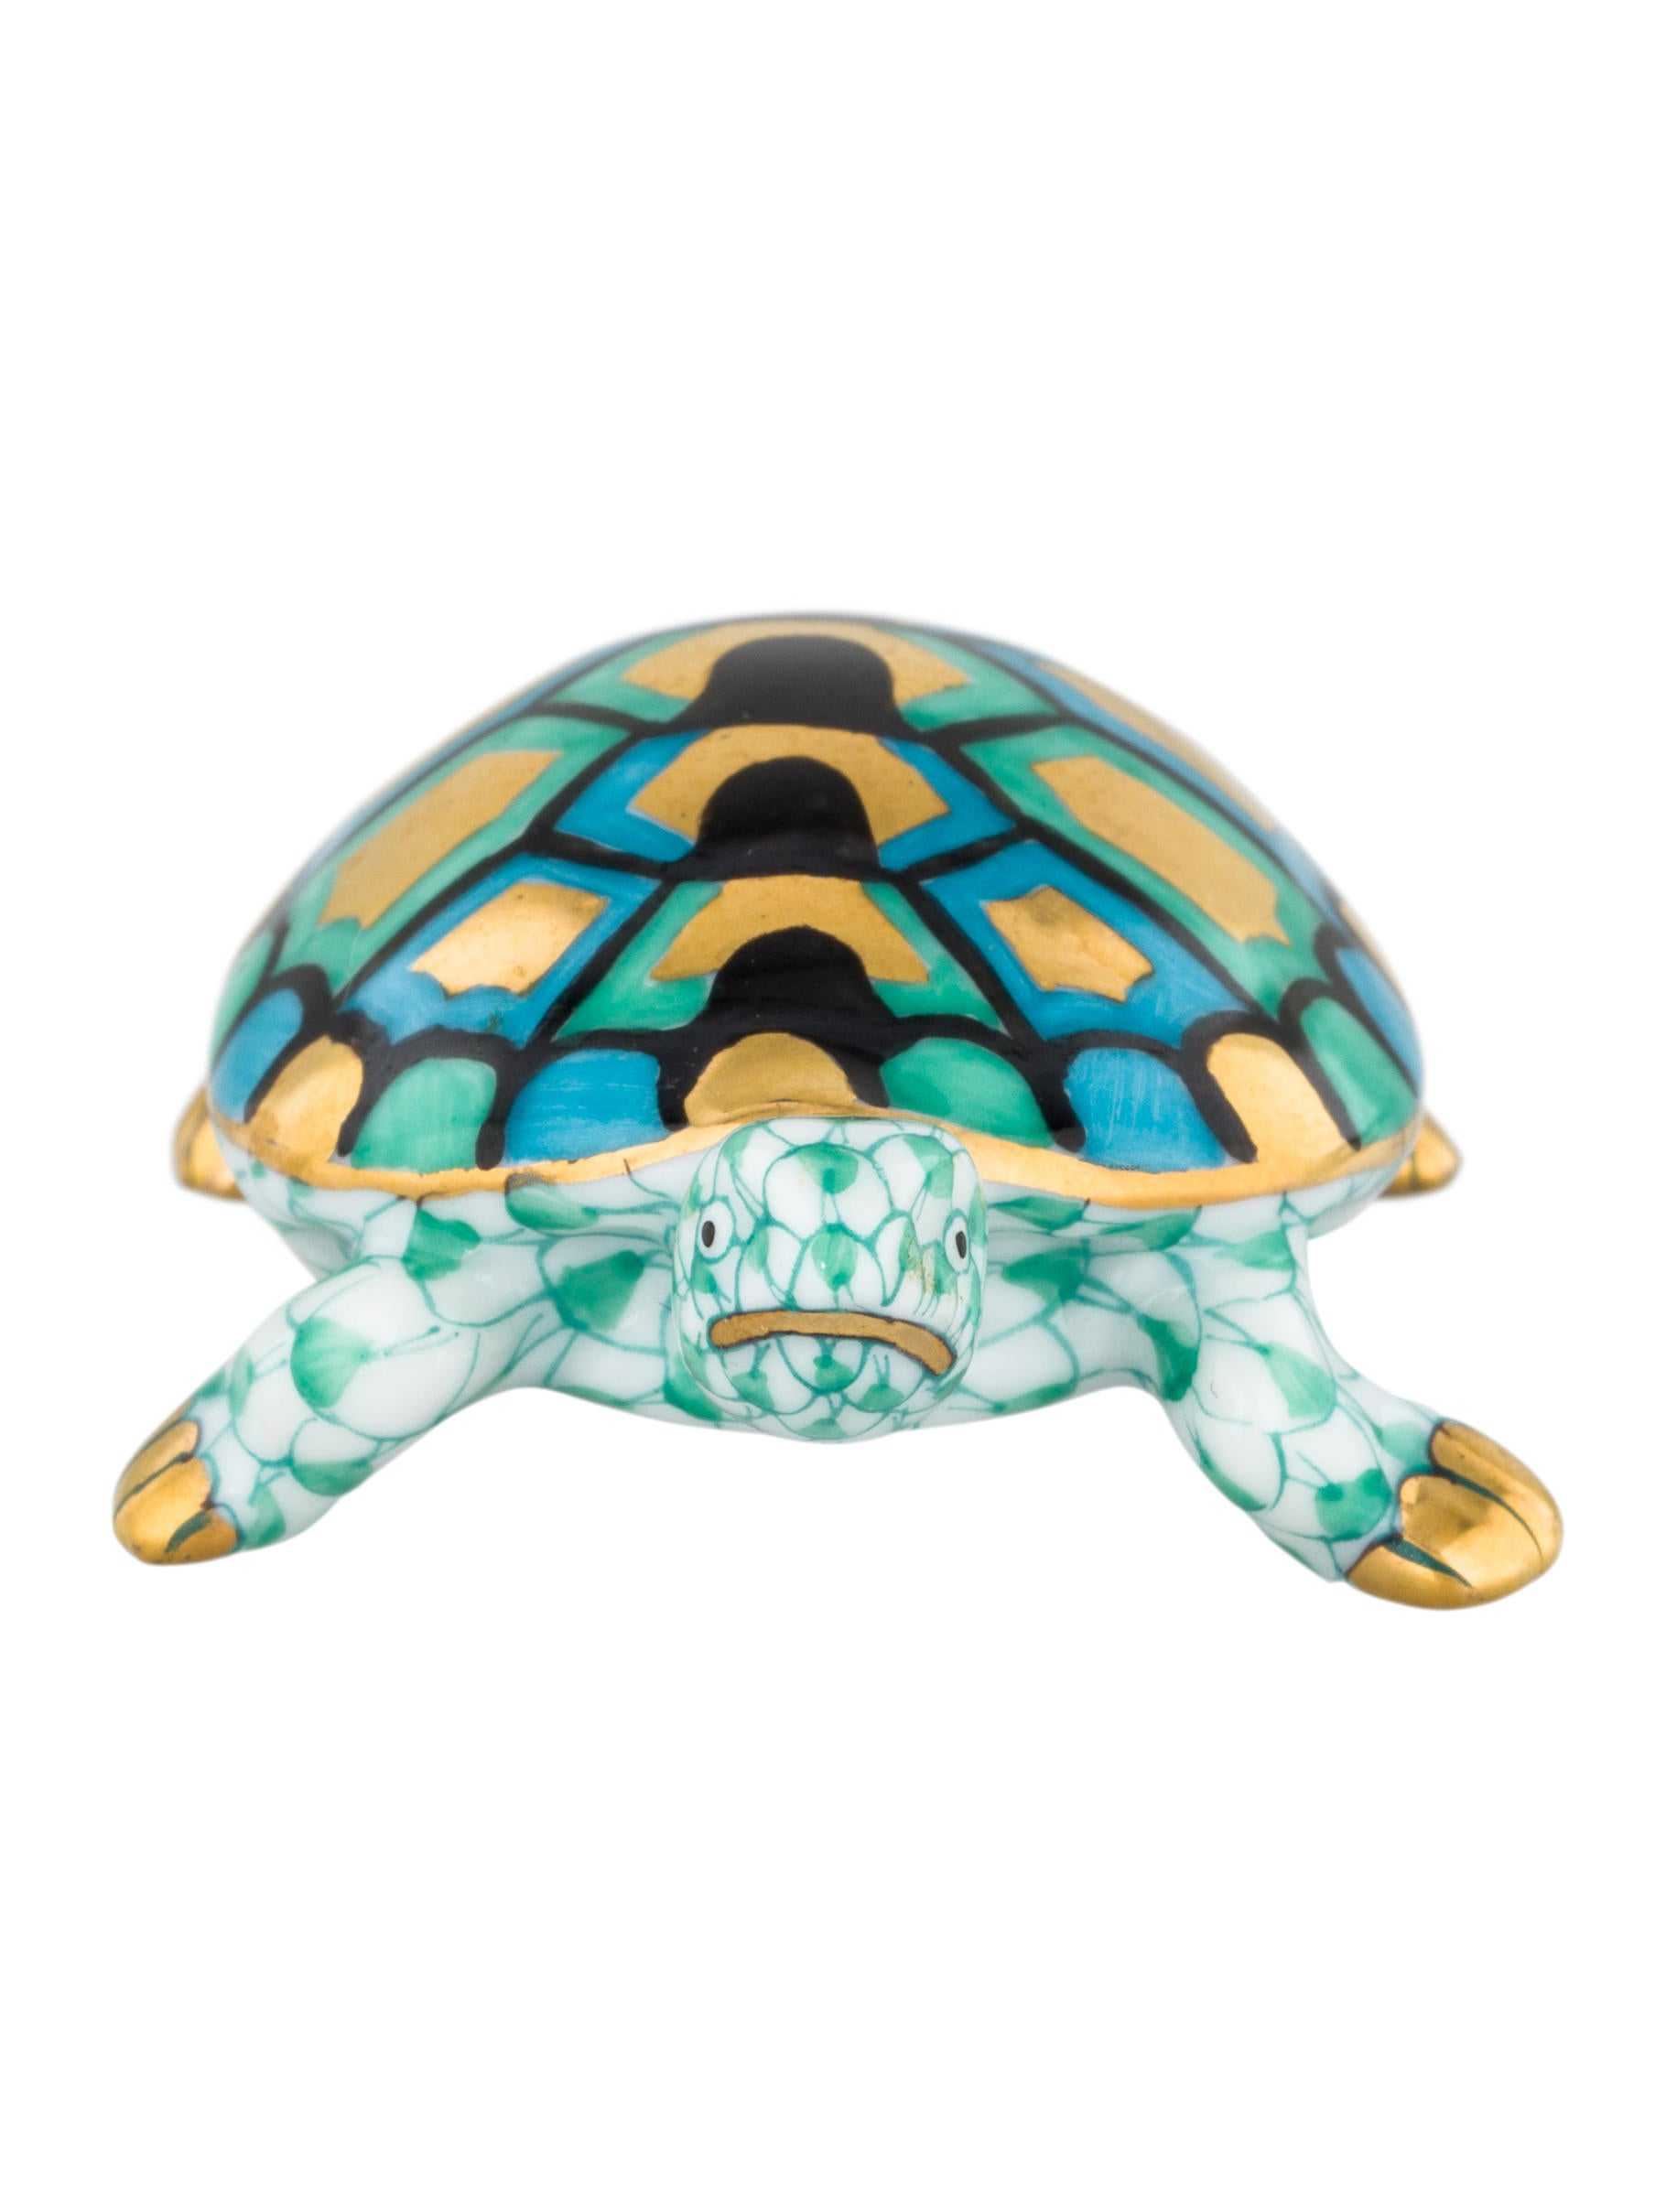 Herend baby turtle figurine decor and accessories Turtle decorations for home